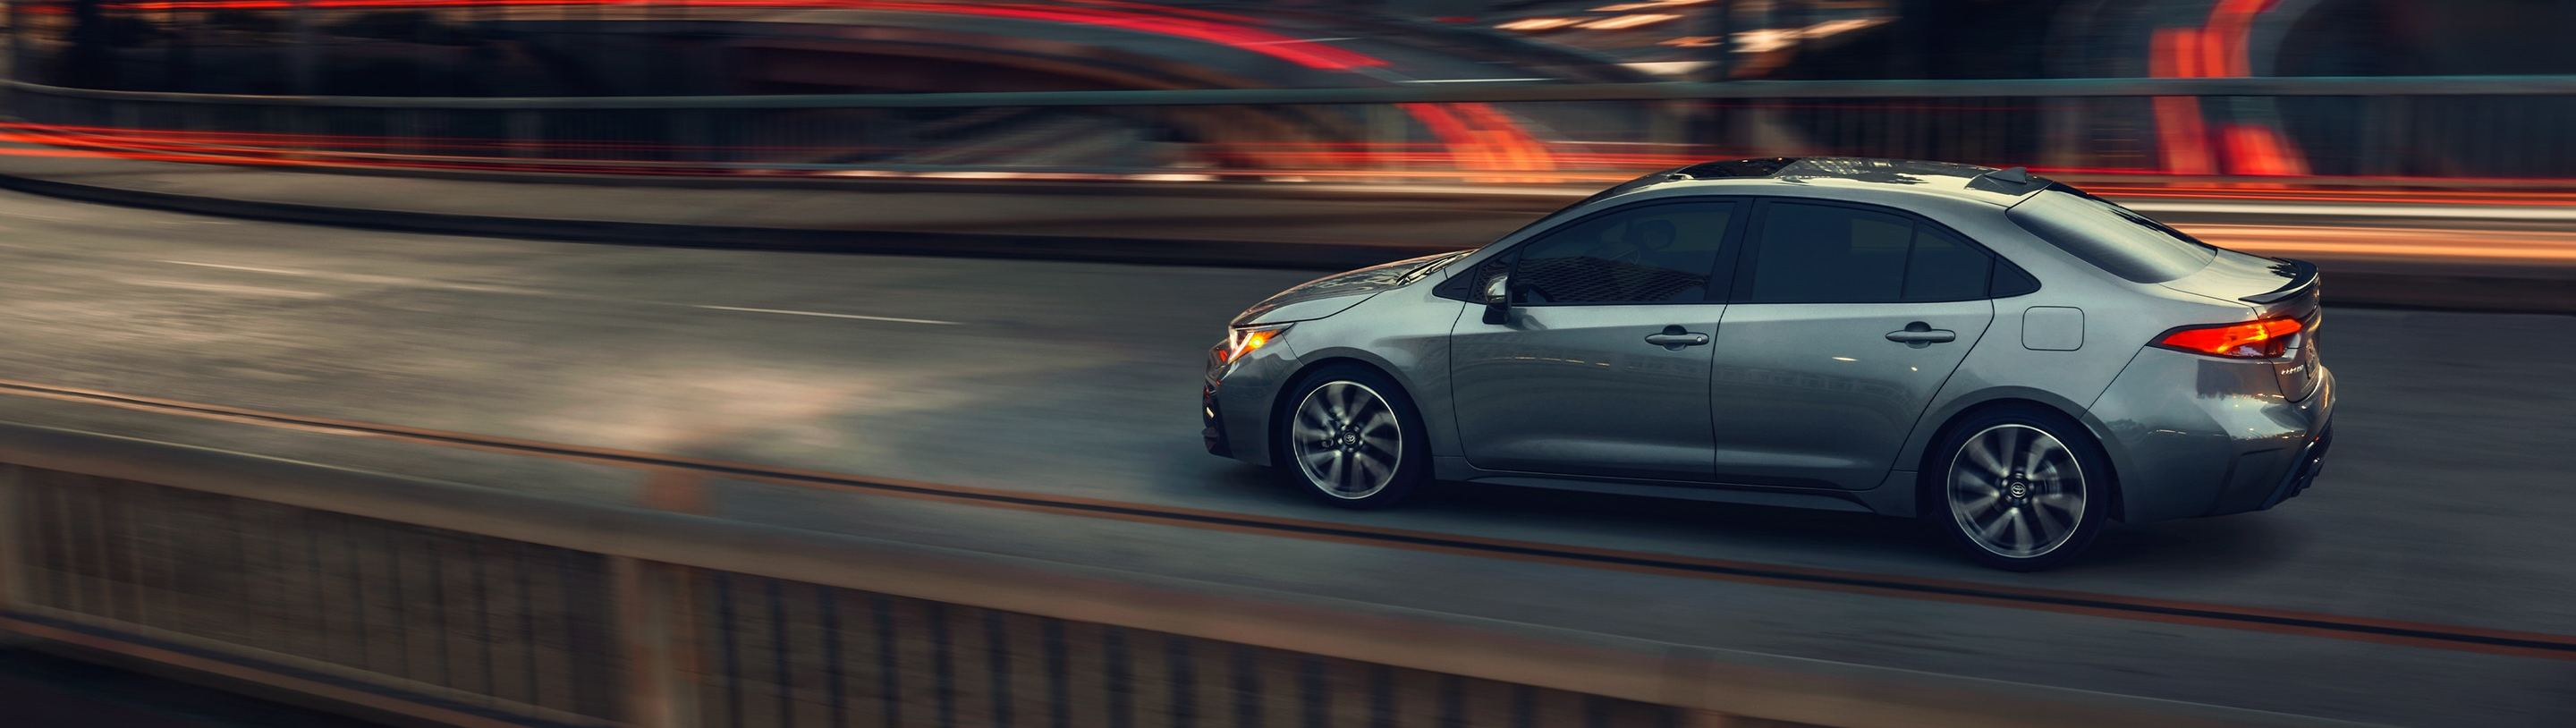 2020 Toyota Corolla for Sale in Tinley Park, IL